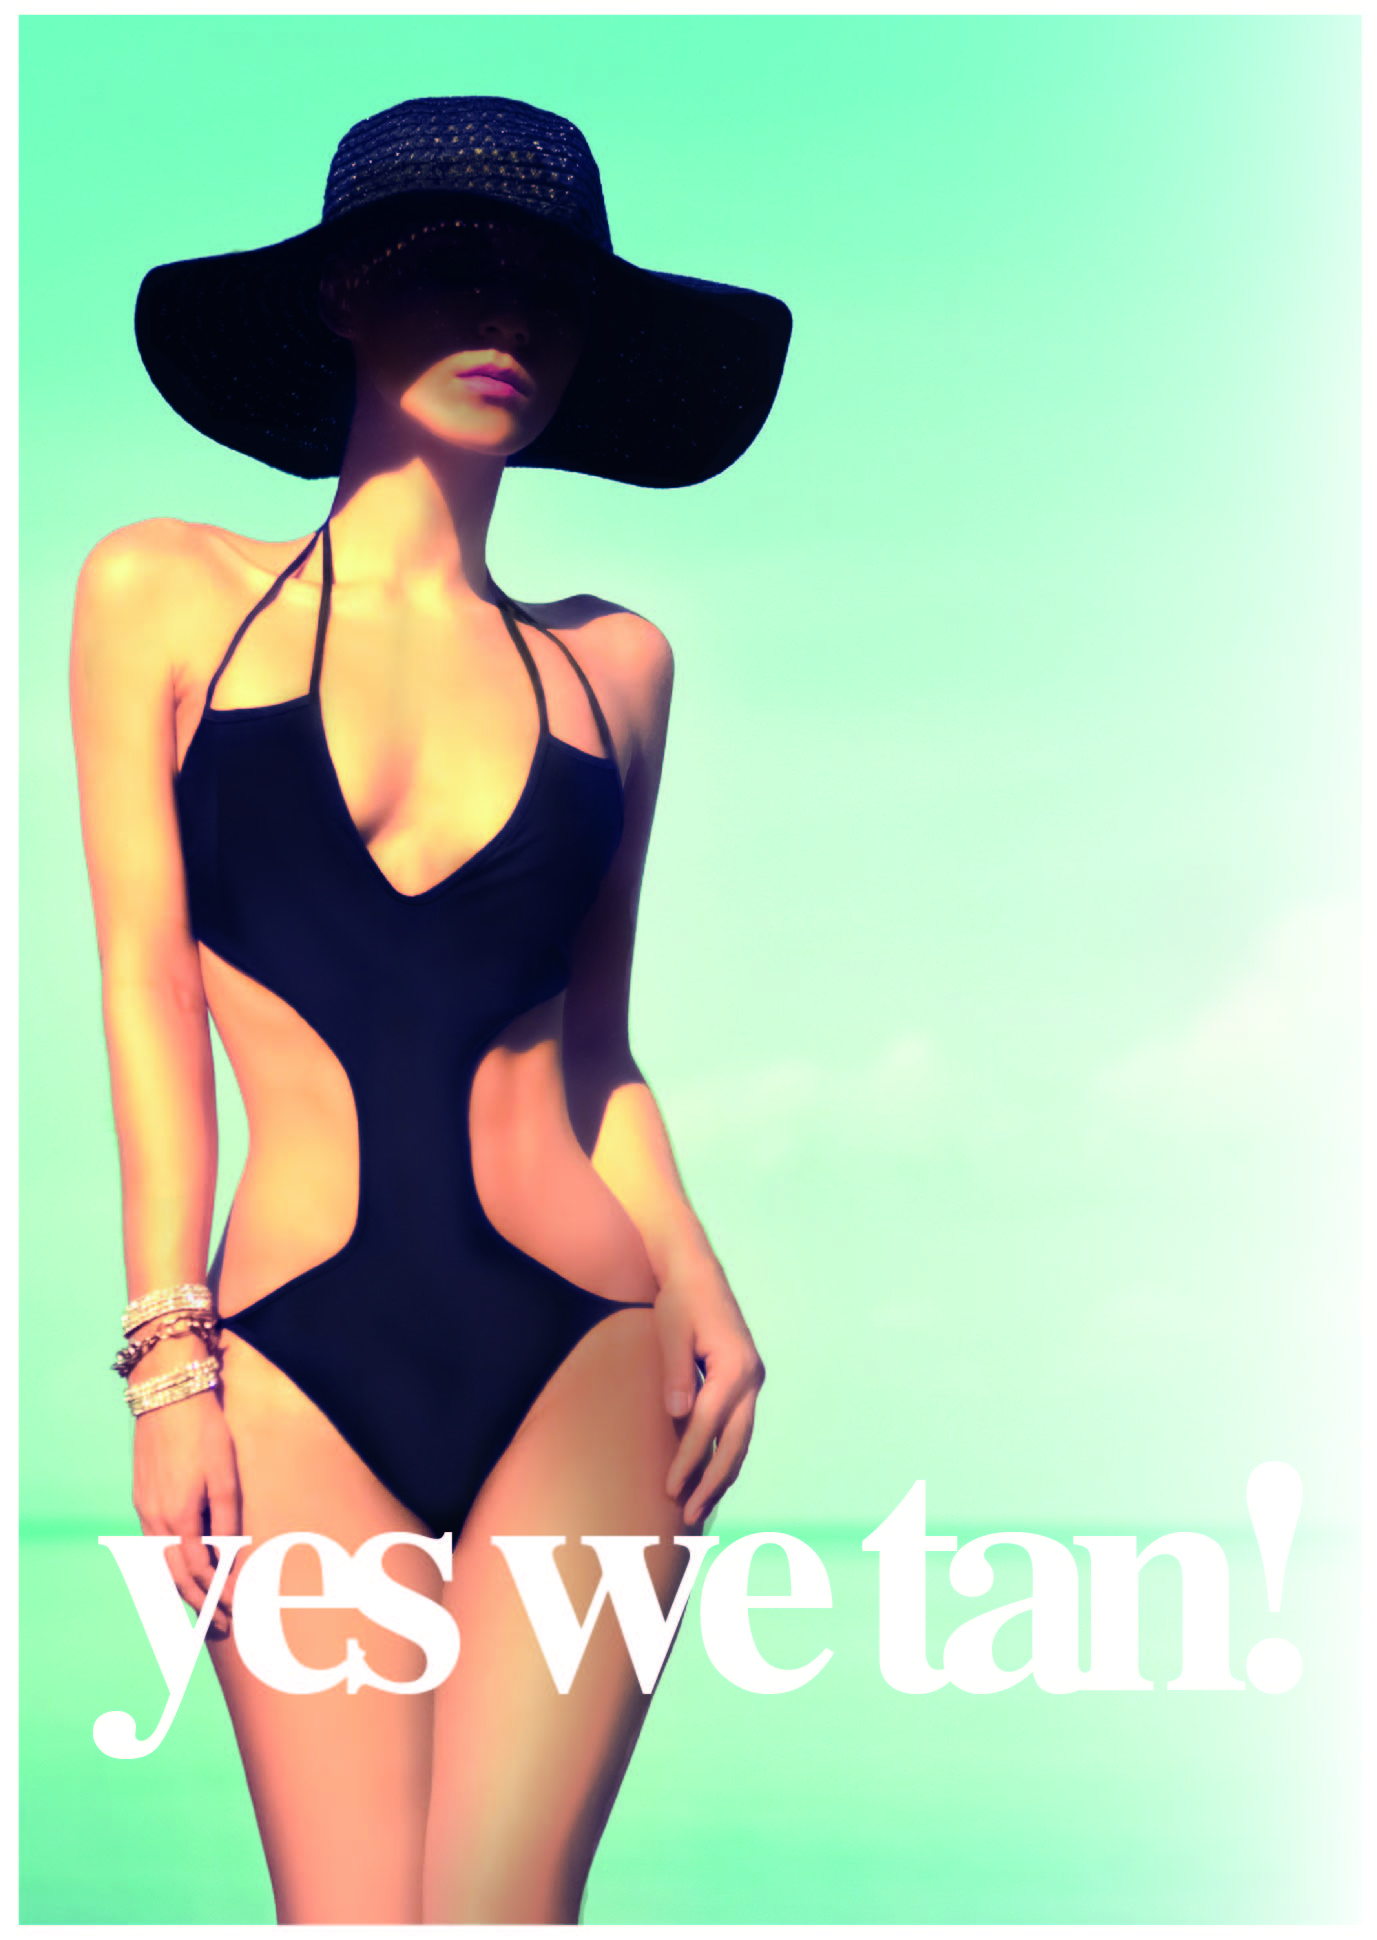 Tanning Bild - yes we tan!